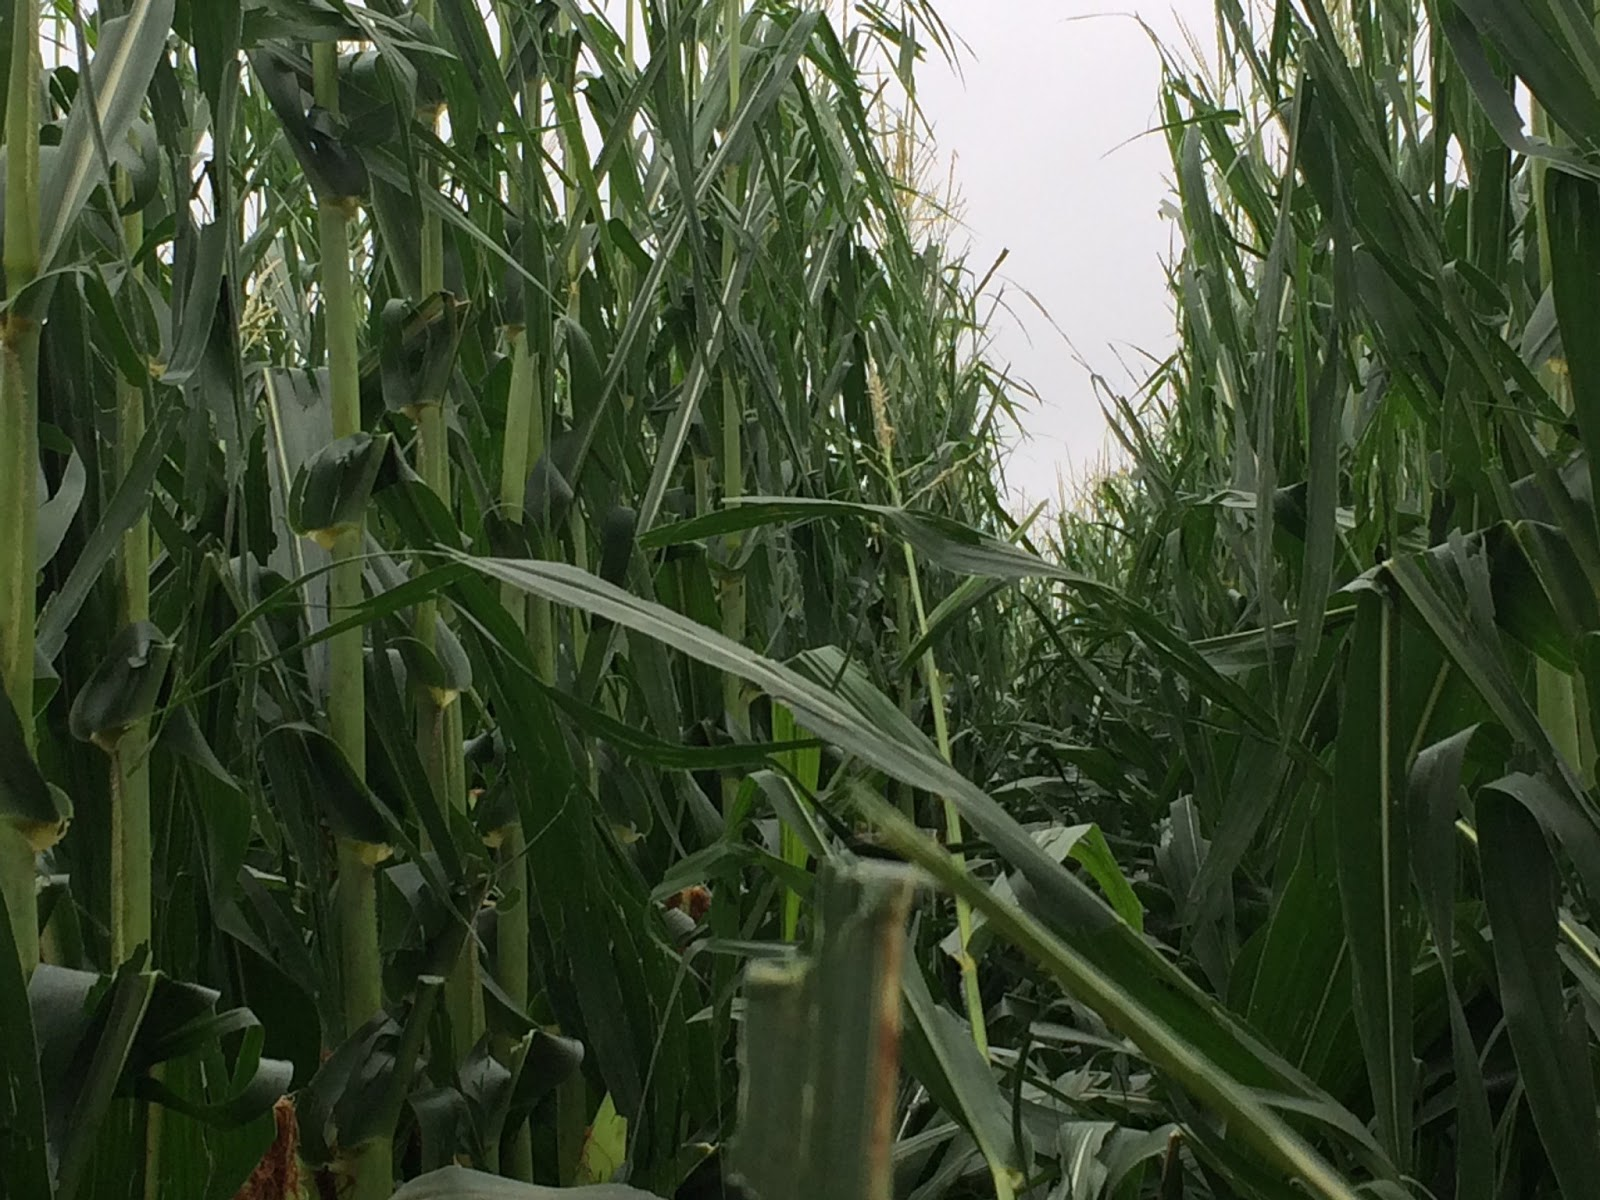 Most leaves are attached, just shredded by hail. Leaves below ears are in decent shape. Minimal yield loss expected.Credit: Tyler Reynolds, Farmer.